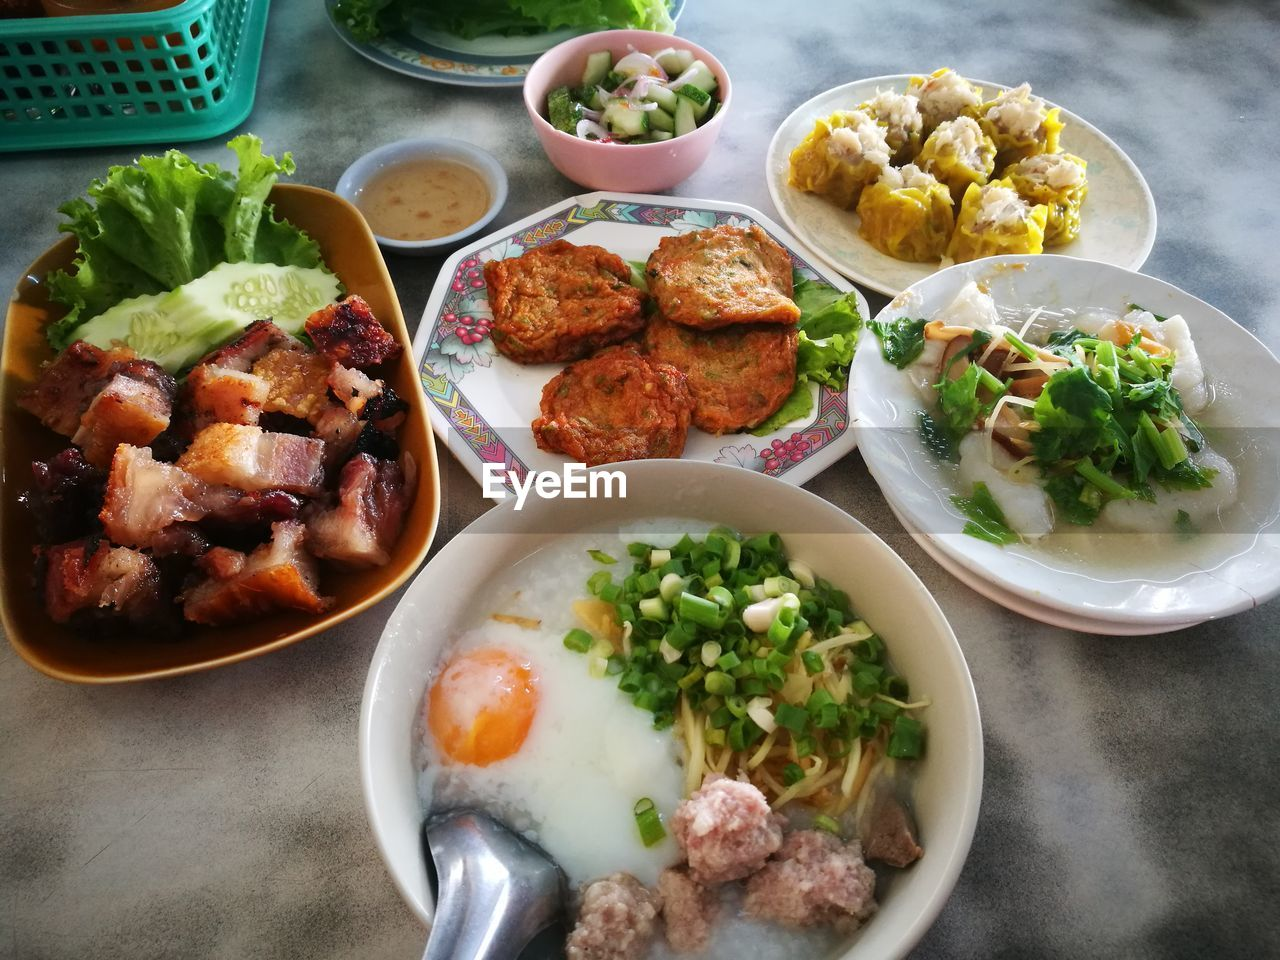 food and drink, food, ready-to-eat, freshness, table, healthy eating, meat, plate, bowl, high angle view, wellbeing, serving size, choice, indoors, variation, vegetable, meal, still life, no people, salad, tray, temptation, chinese food